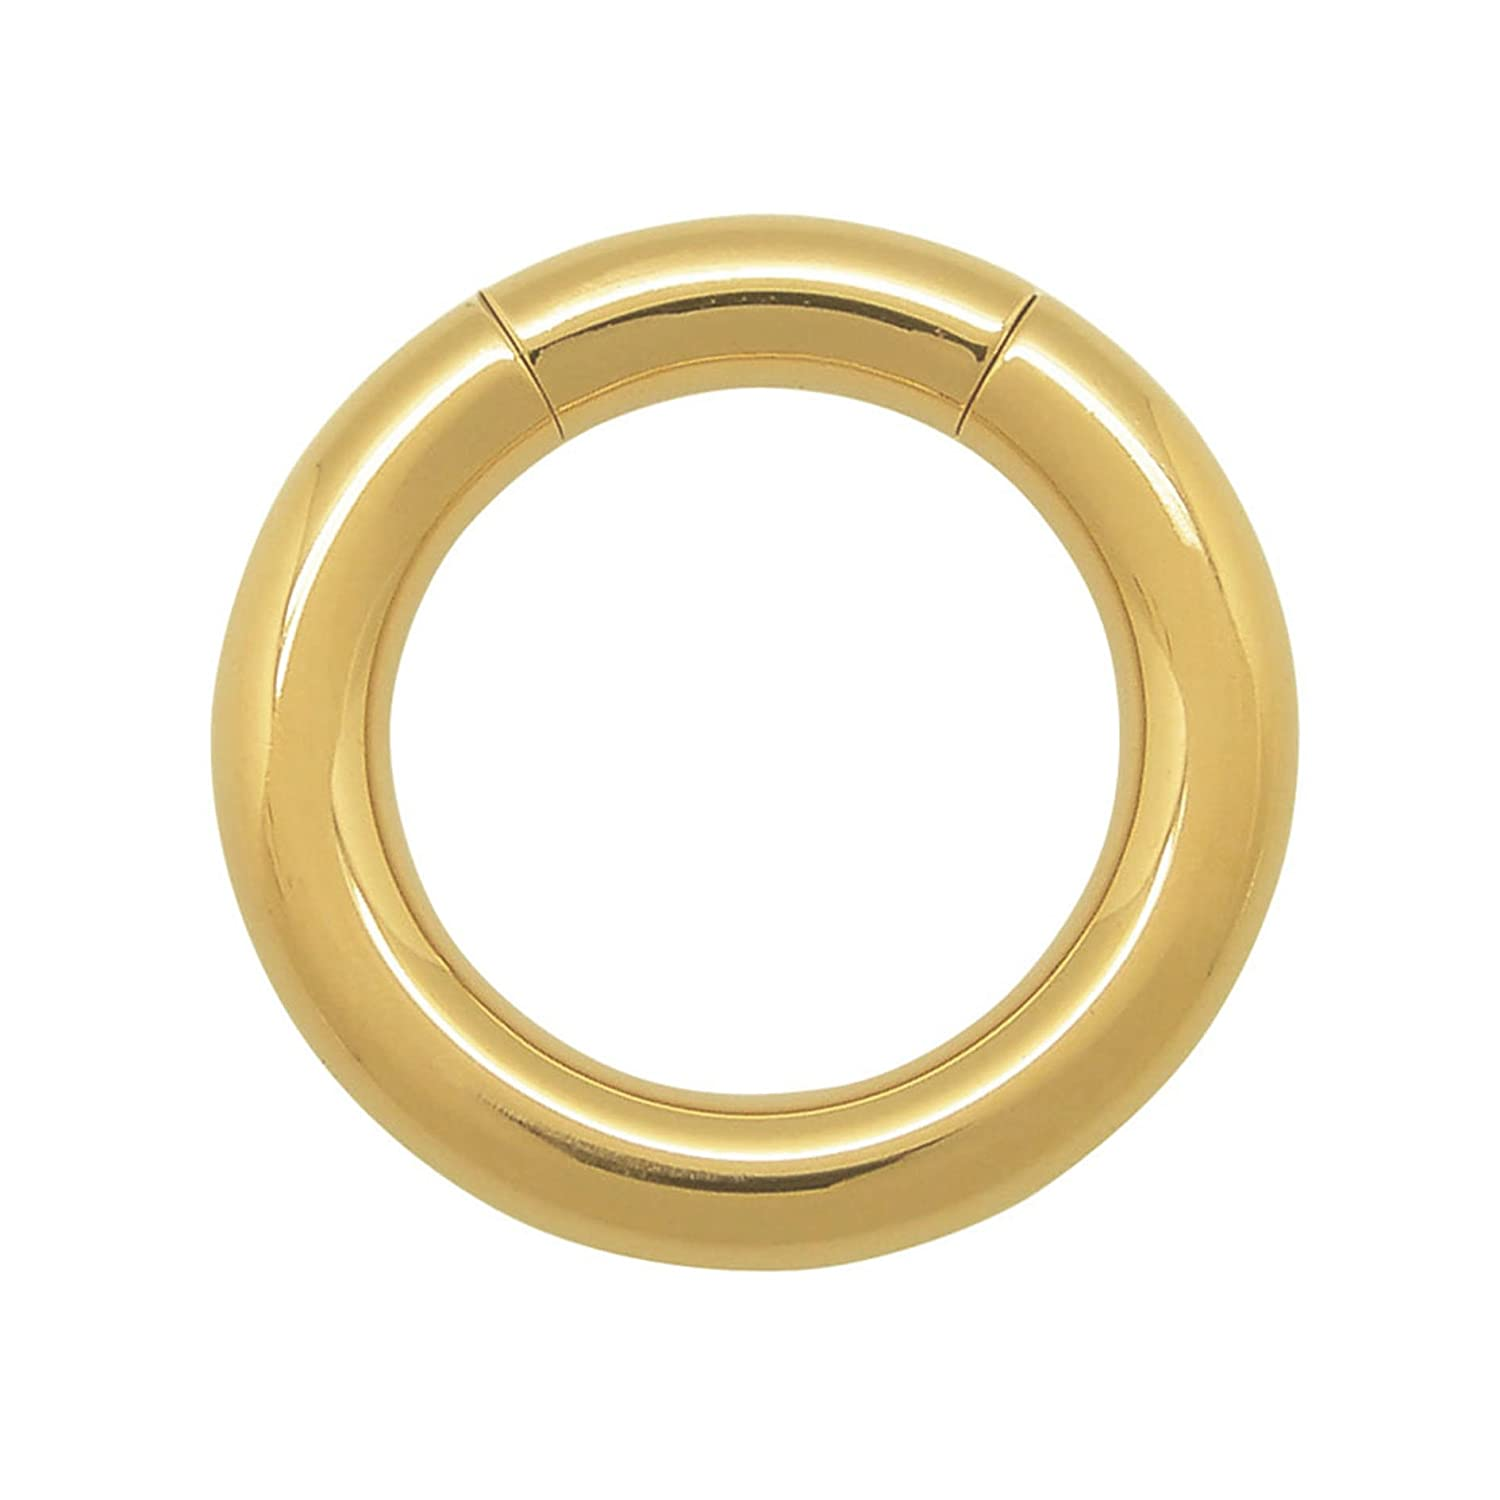 ACECHANNEL IP Gold Plated Stainless Steel Body Piercing Jewelry Segment Ring